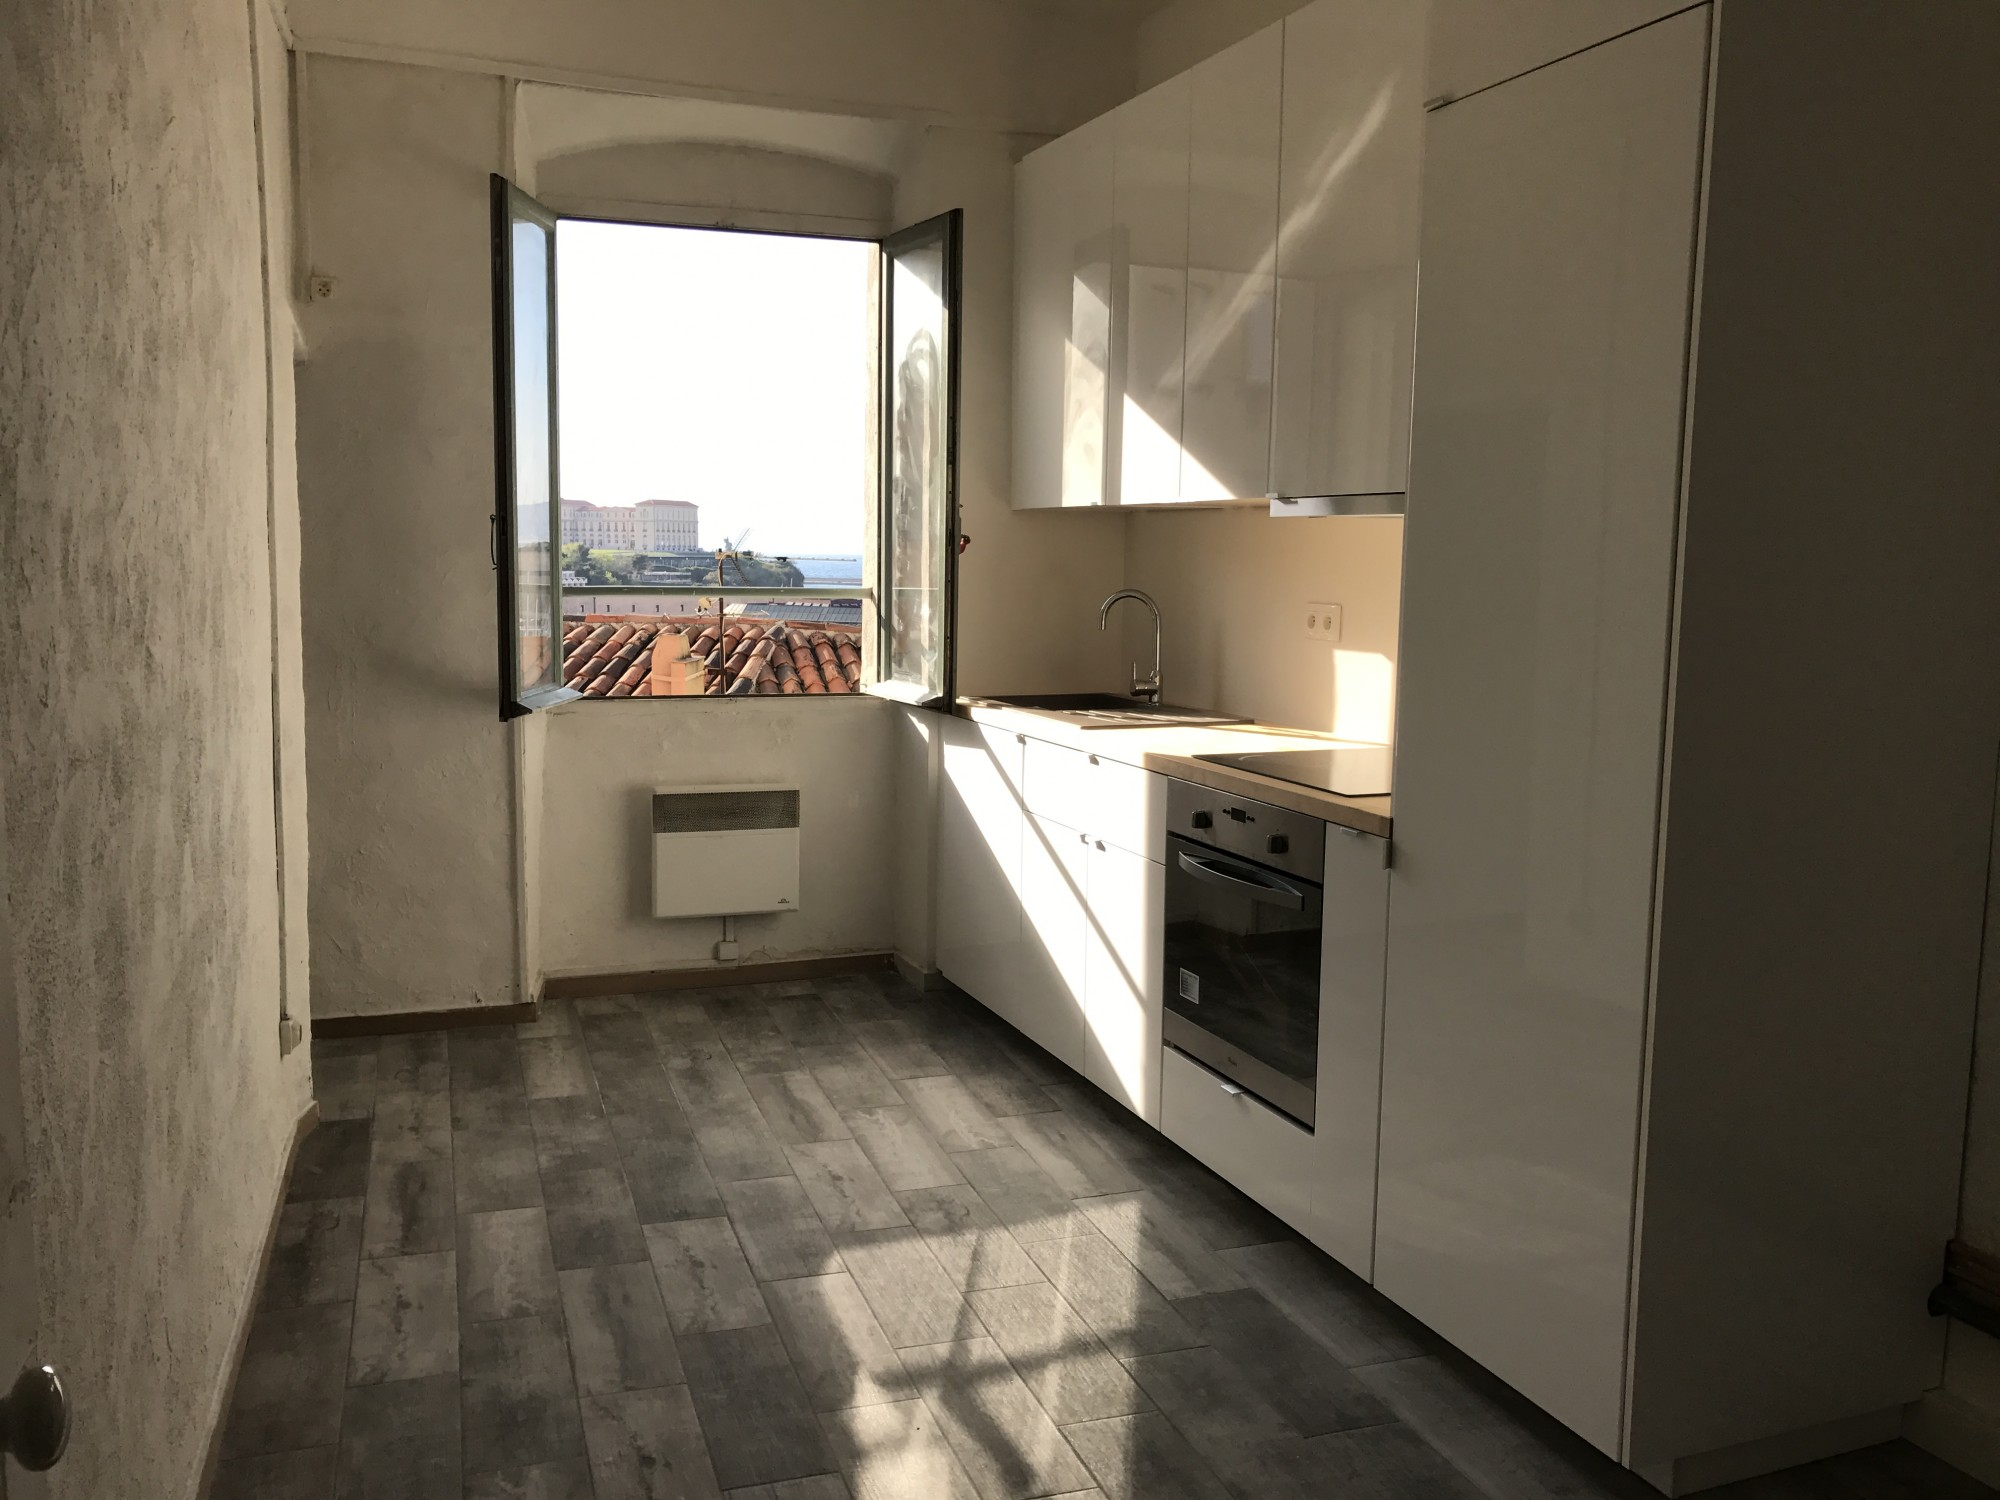 Locations appartement t1 f1 13007 quartier st victor for Location appartement sans agence immobiliere